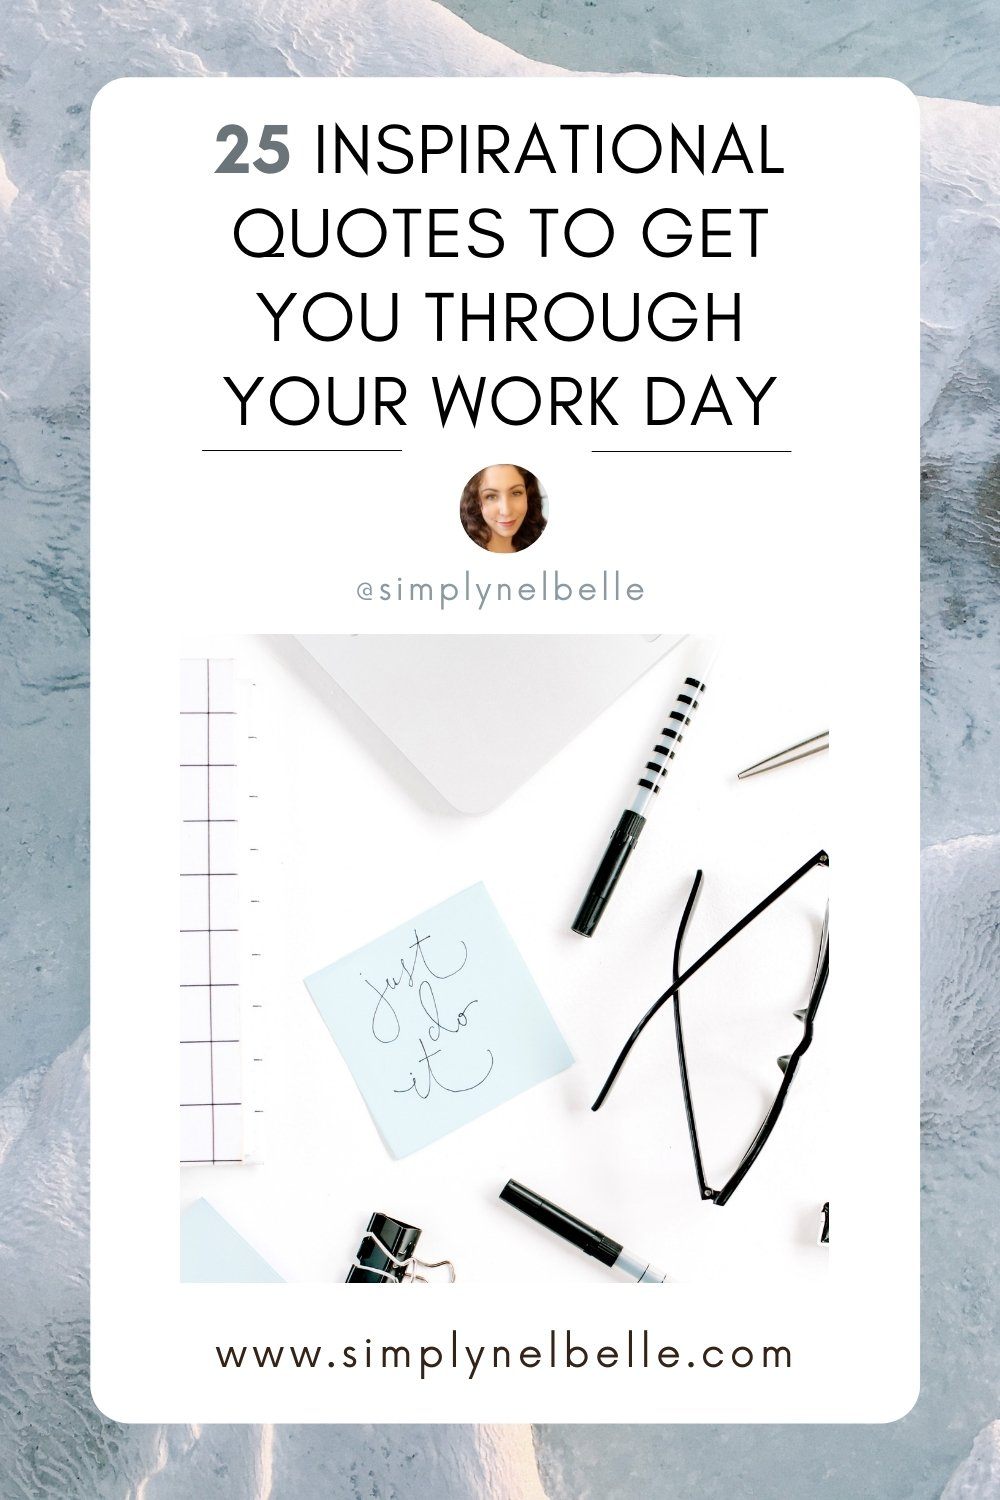 25 Inspirational Quotes to Get You Through Your Work Day - Simply Nel Belle Blog - Pinterest Image